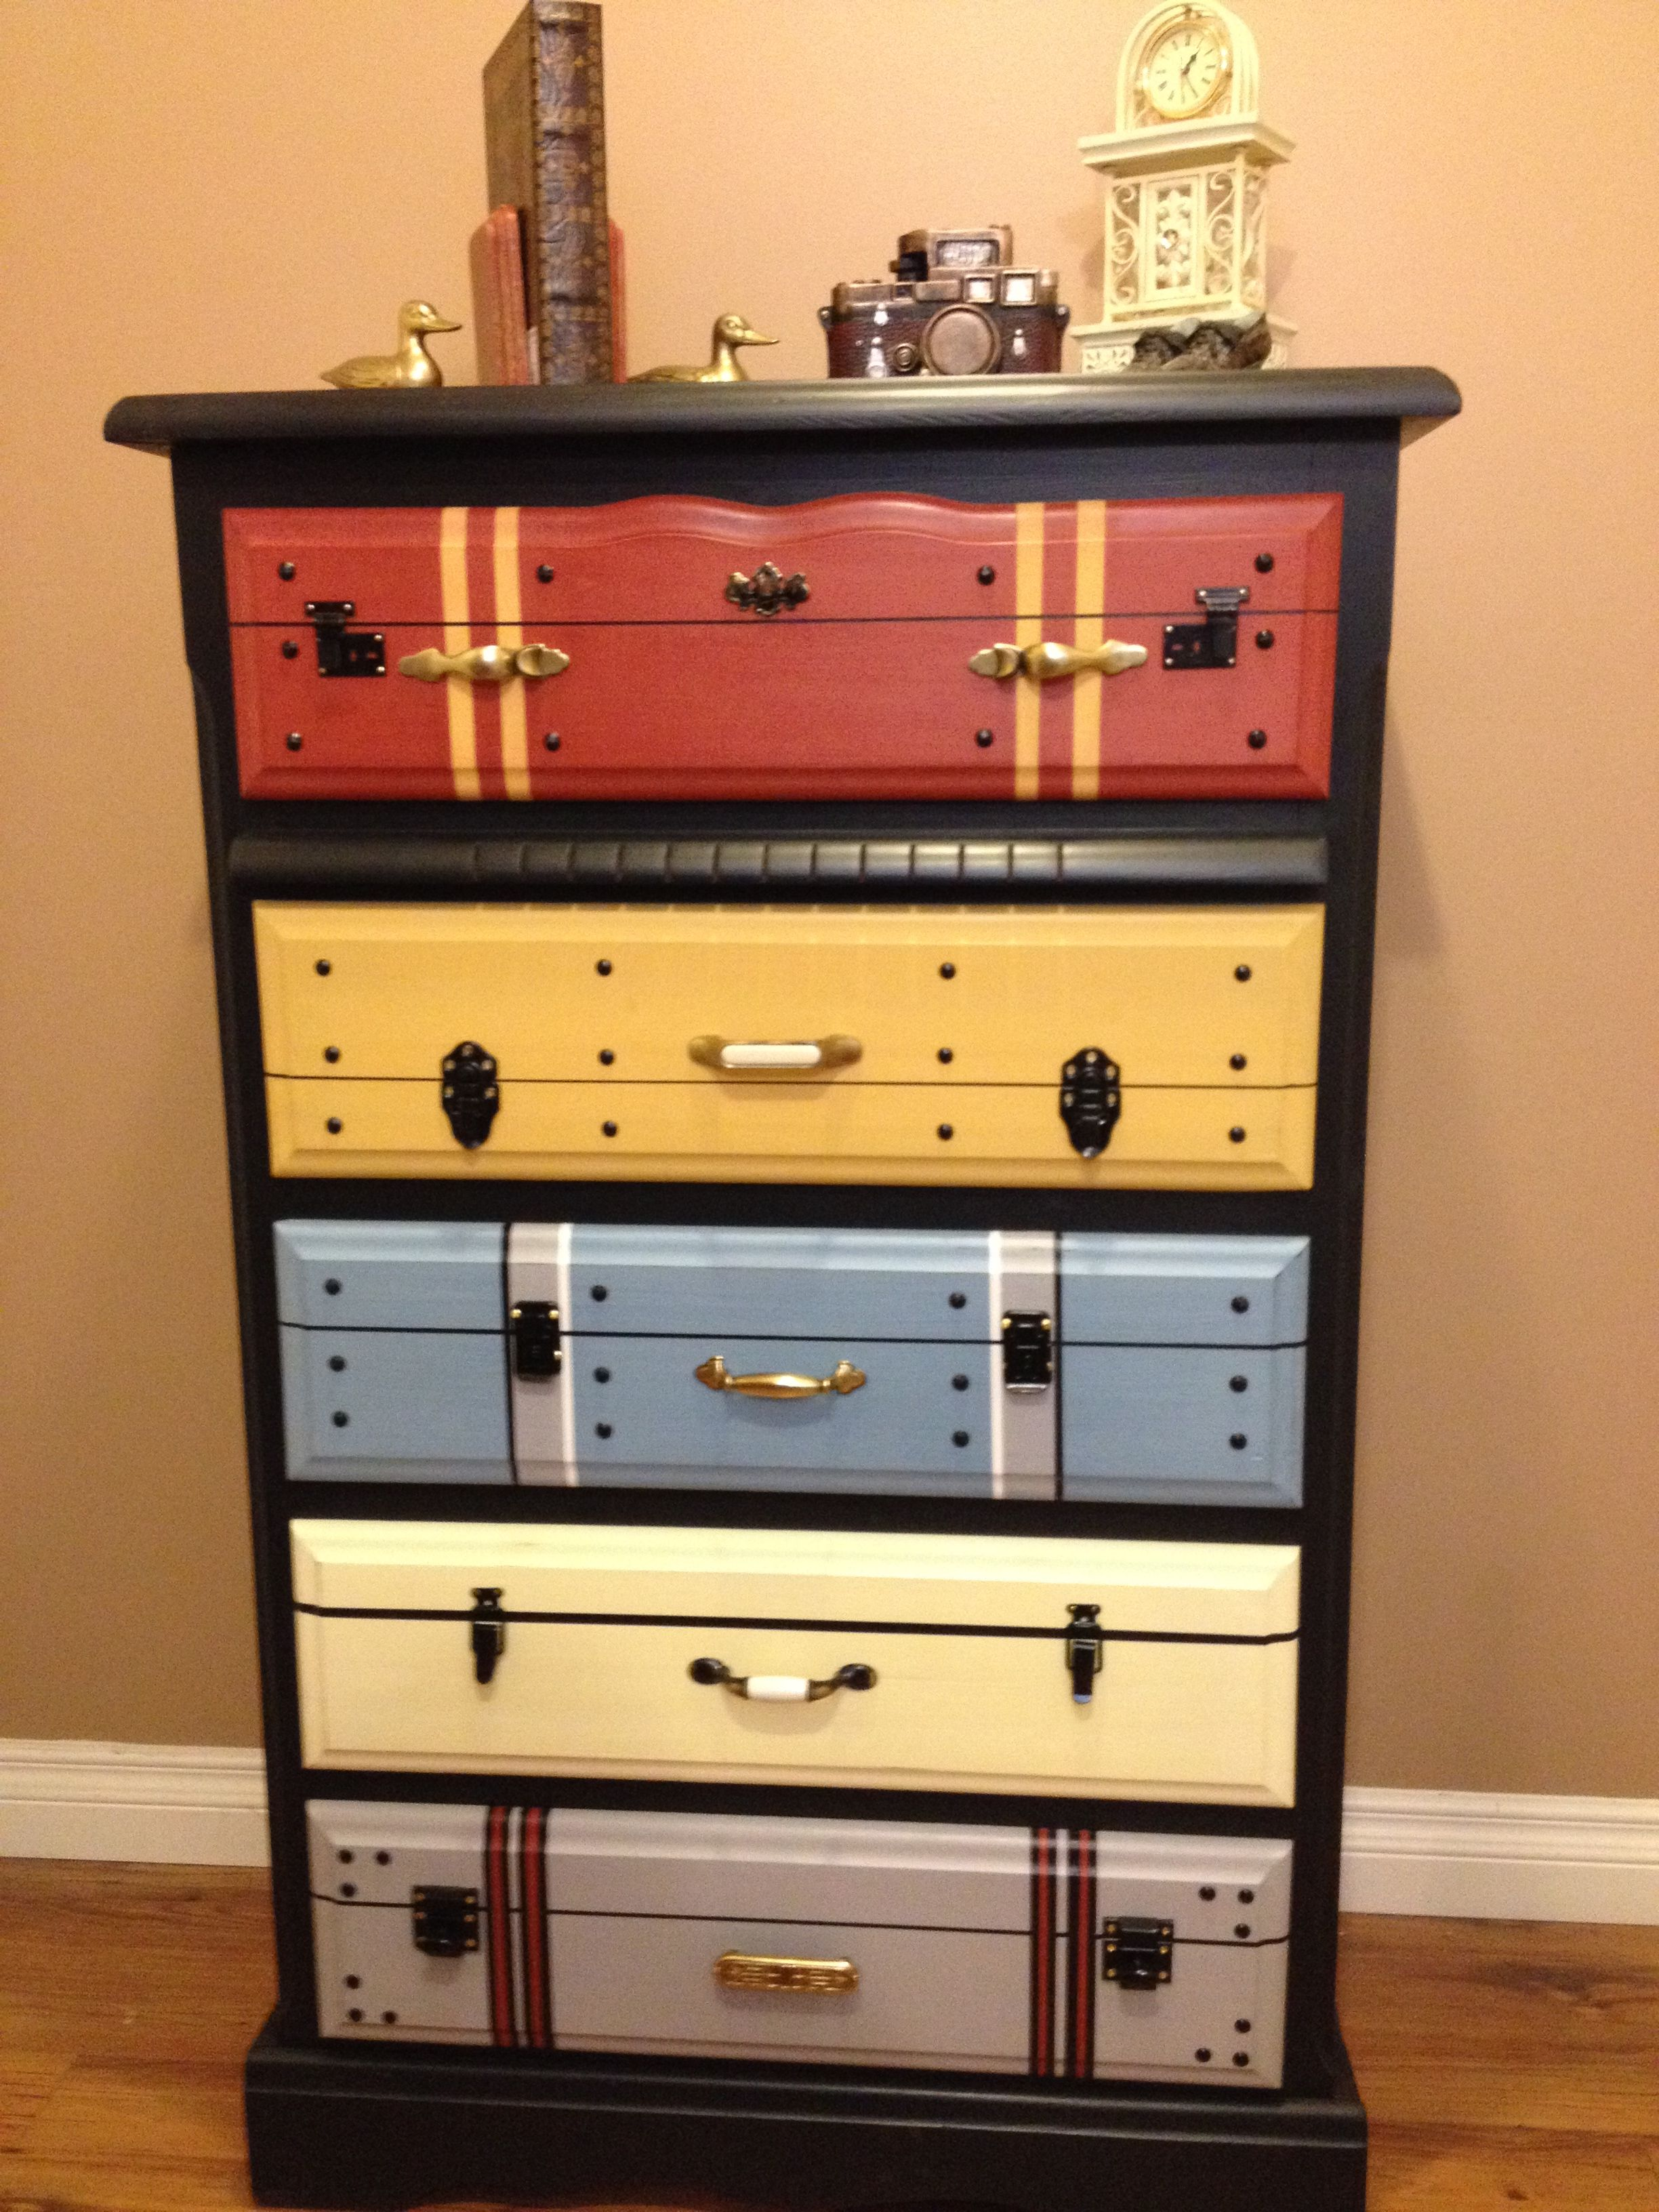 This Is A Dresser Painted To Look Like Suitcases For The